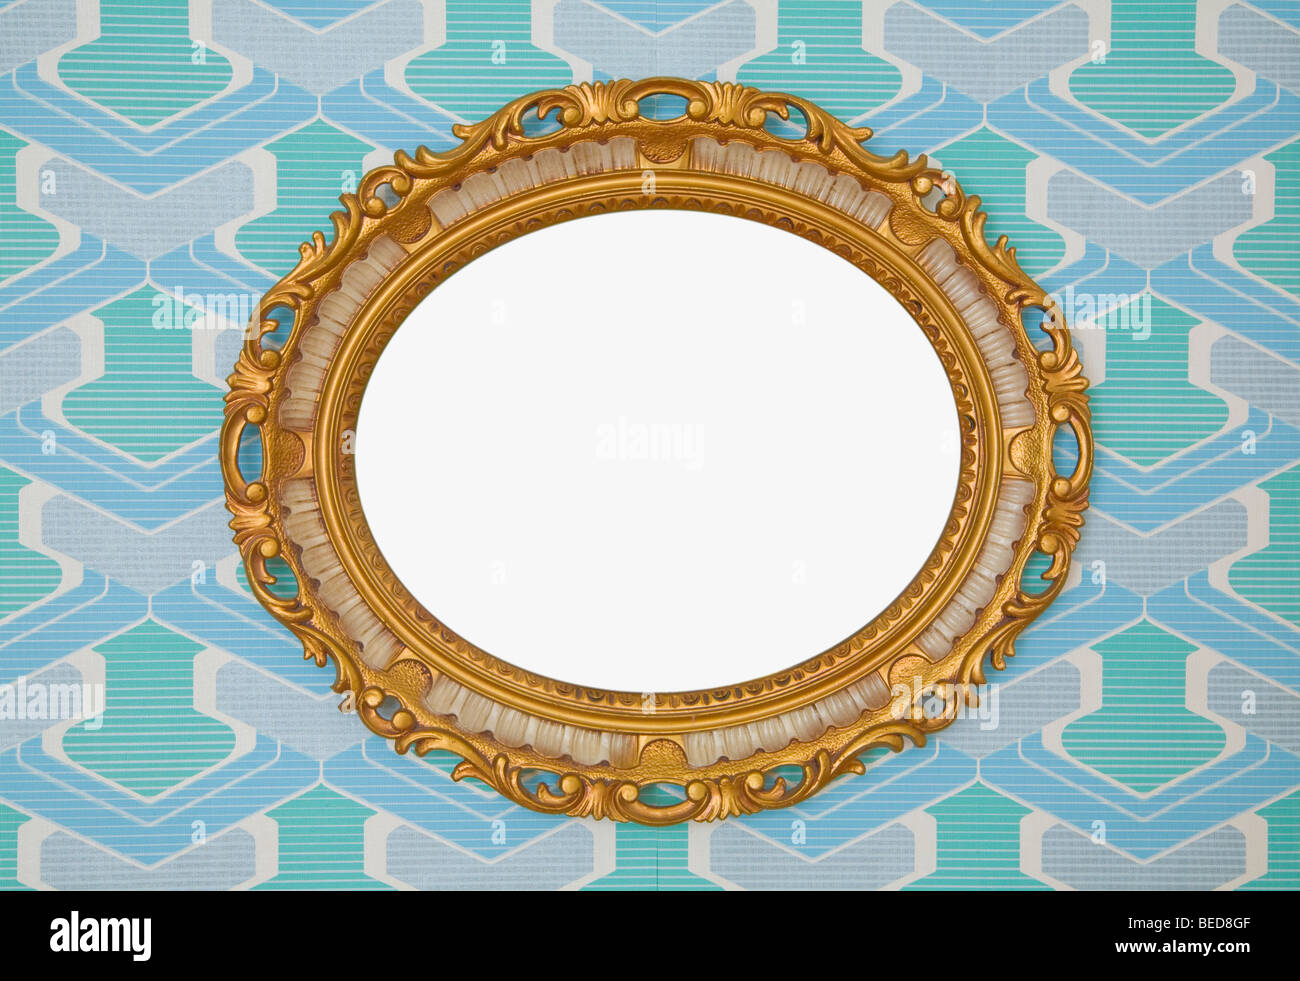 Kitschy golden plastic oval frame, horizontal, mounted on wallpaper from the 1960s or 1970s, frontal view - Stock Image